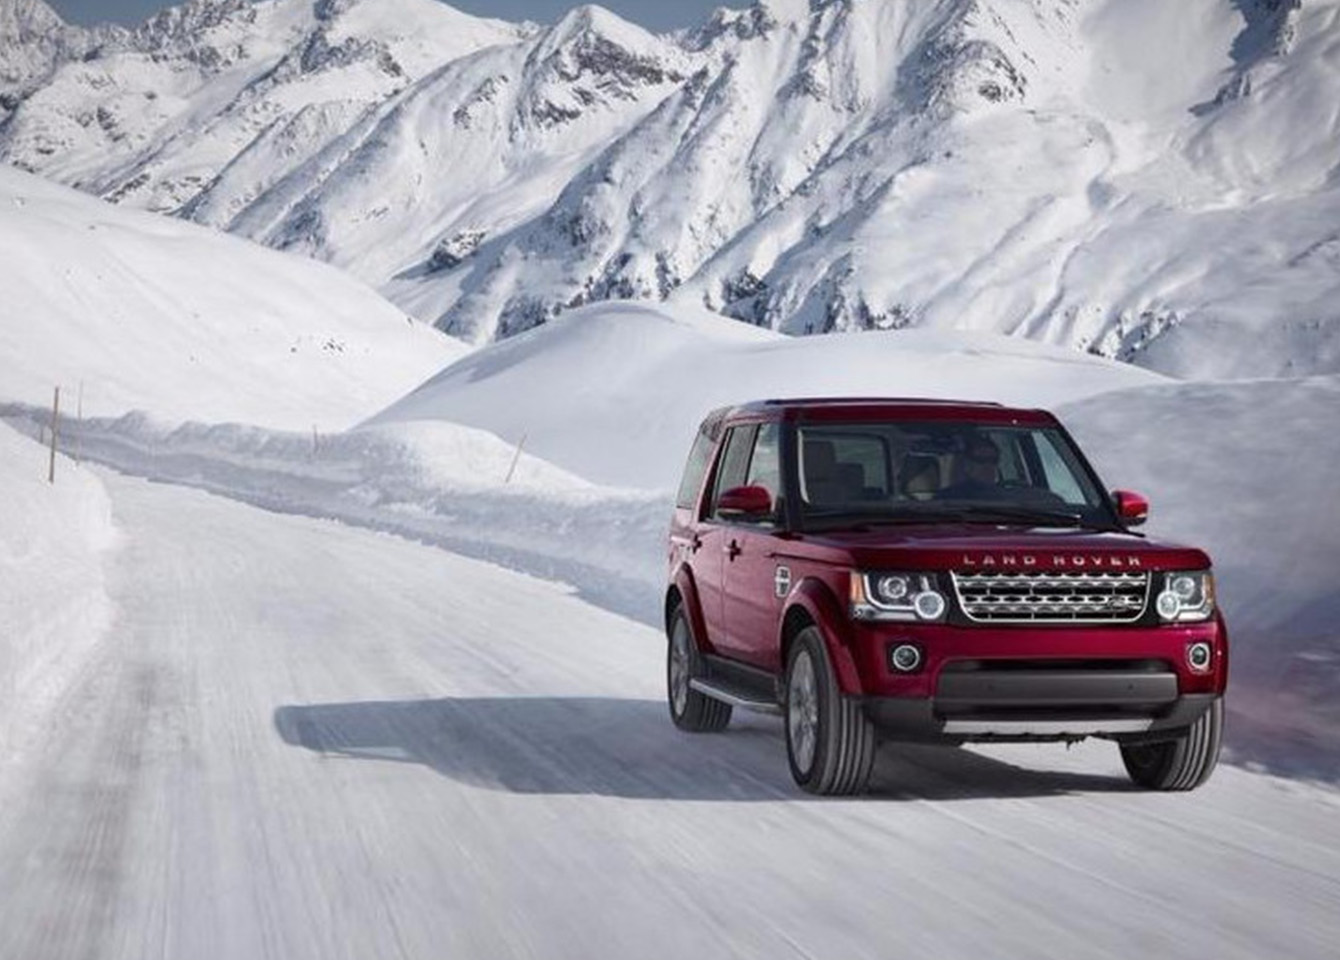 Land Rover Winter Service